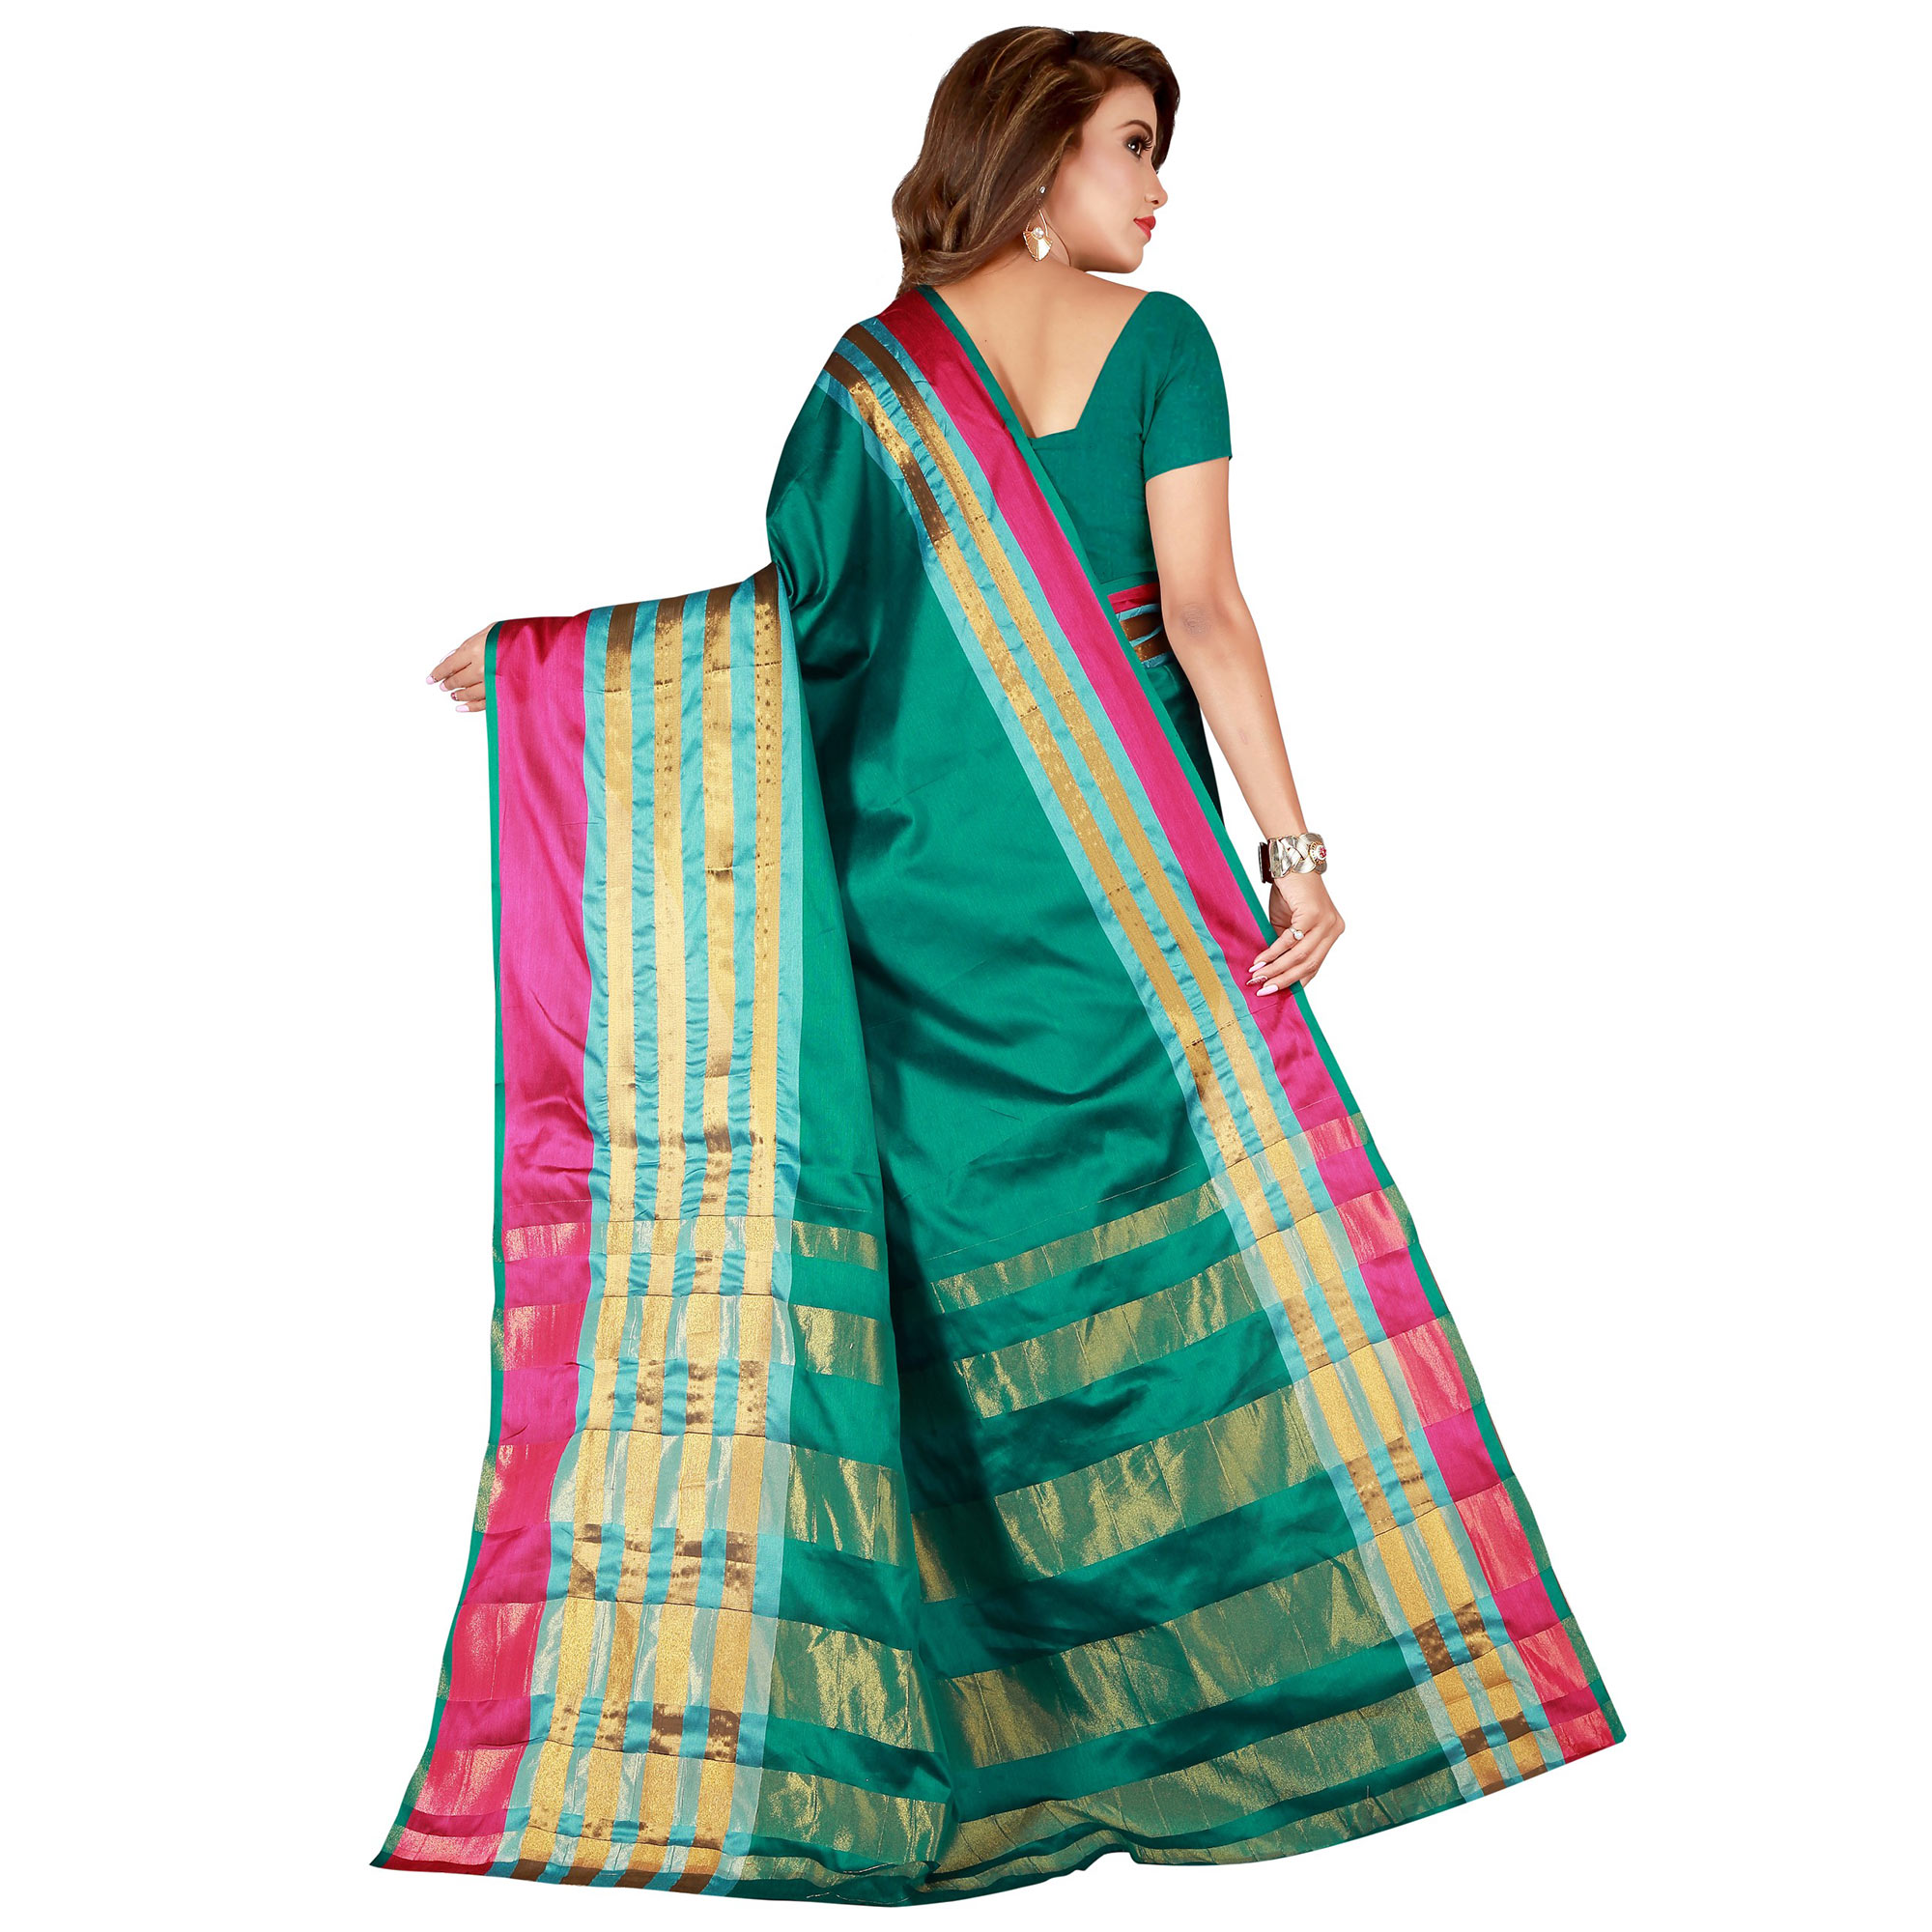 Delightful Turquoise Green Colored Casual Wear Cotton Saree